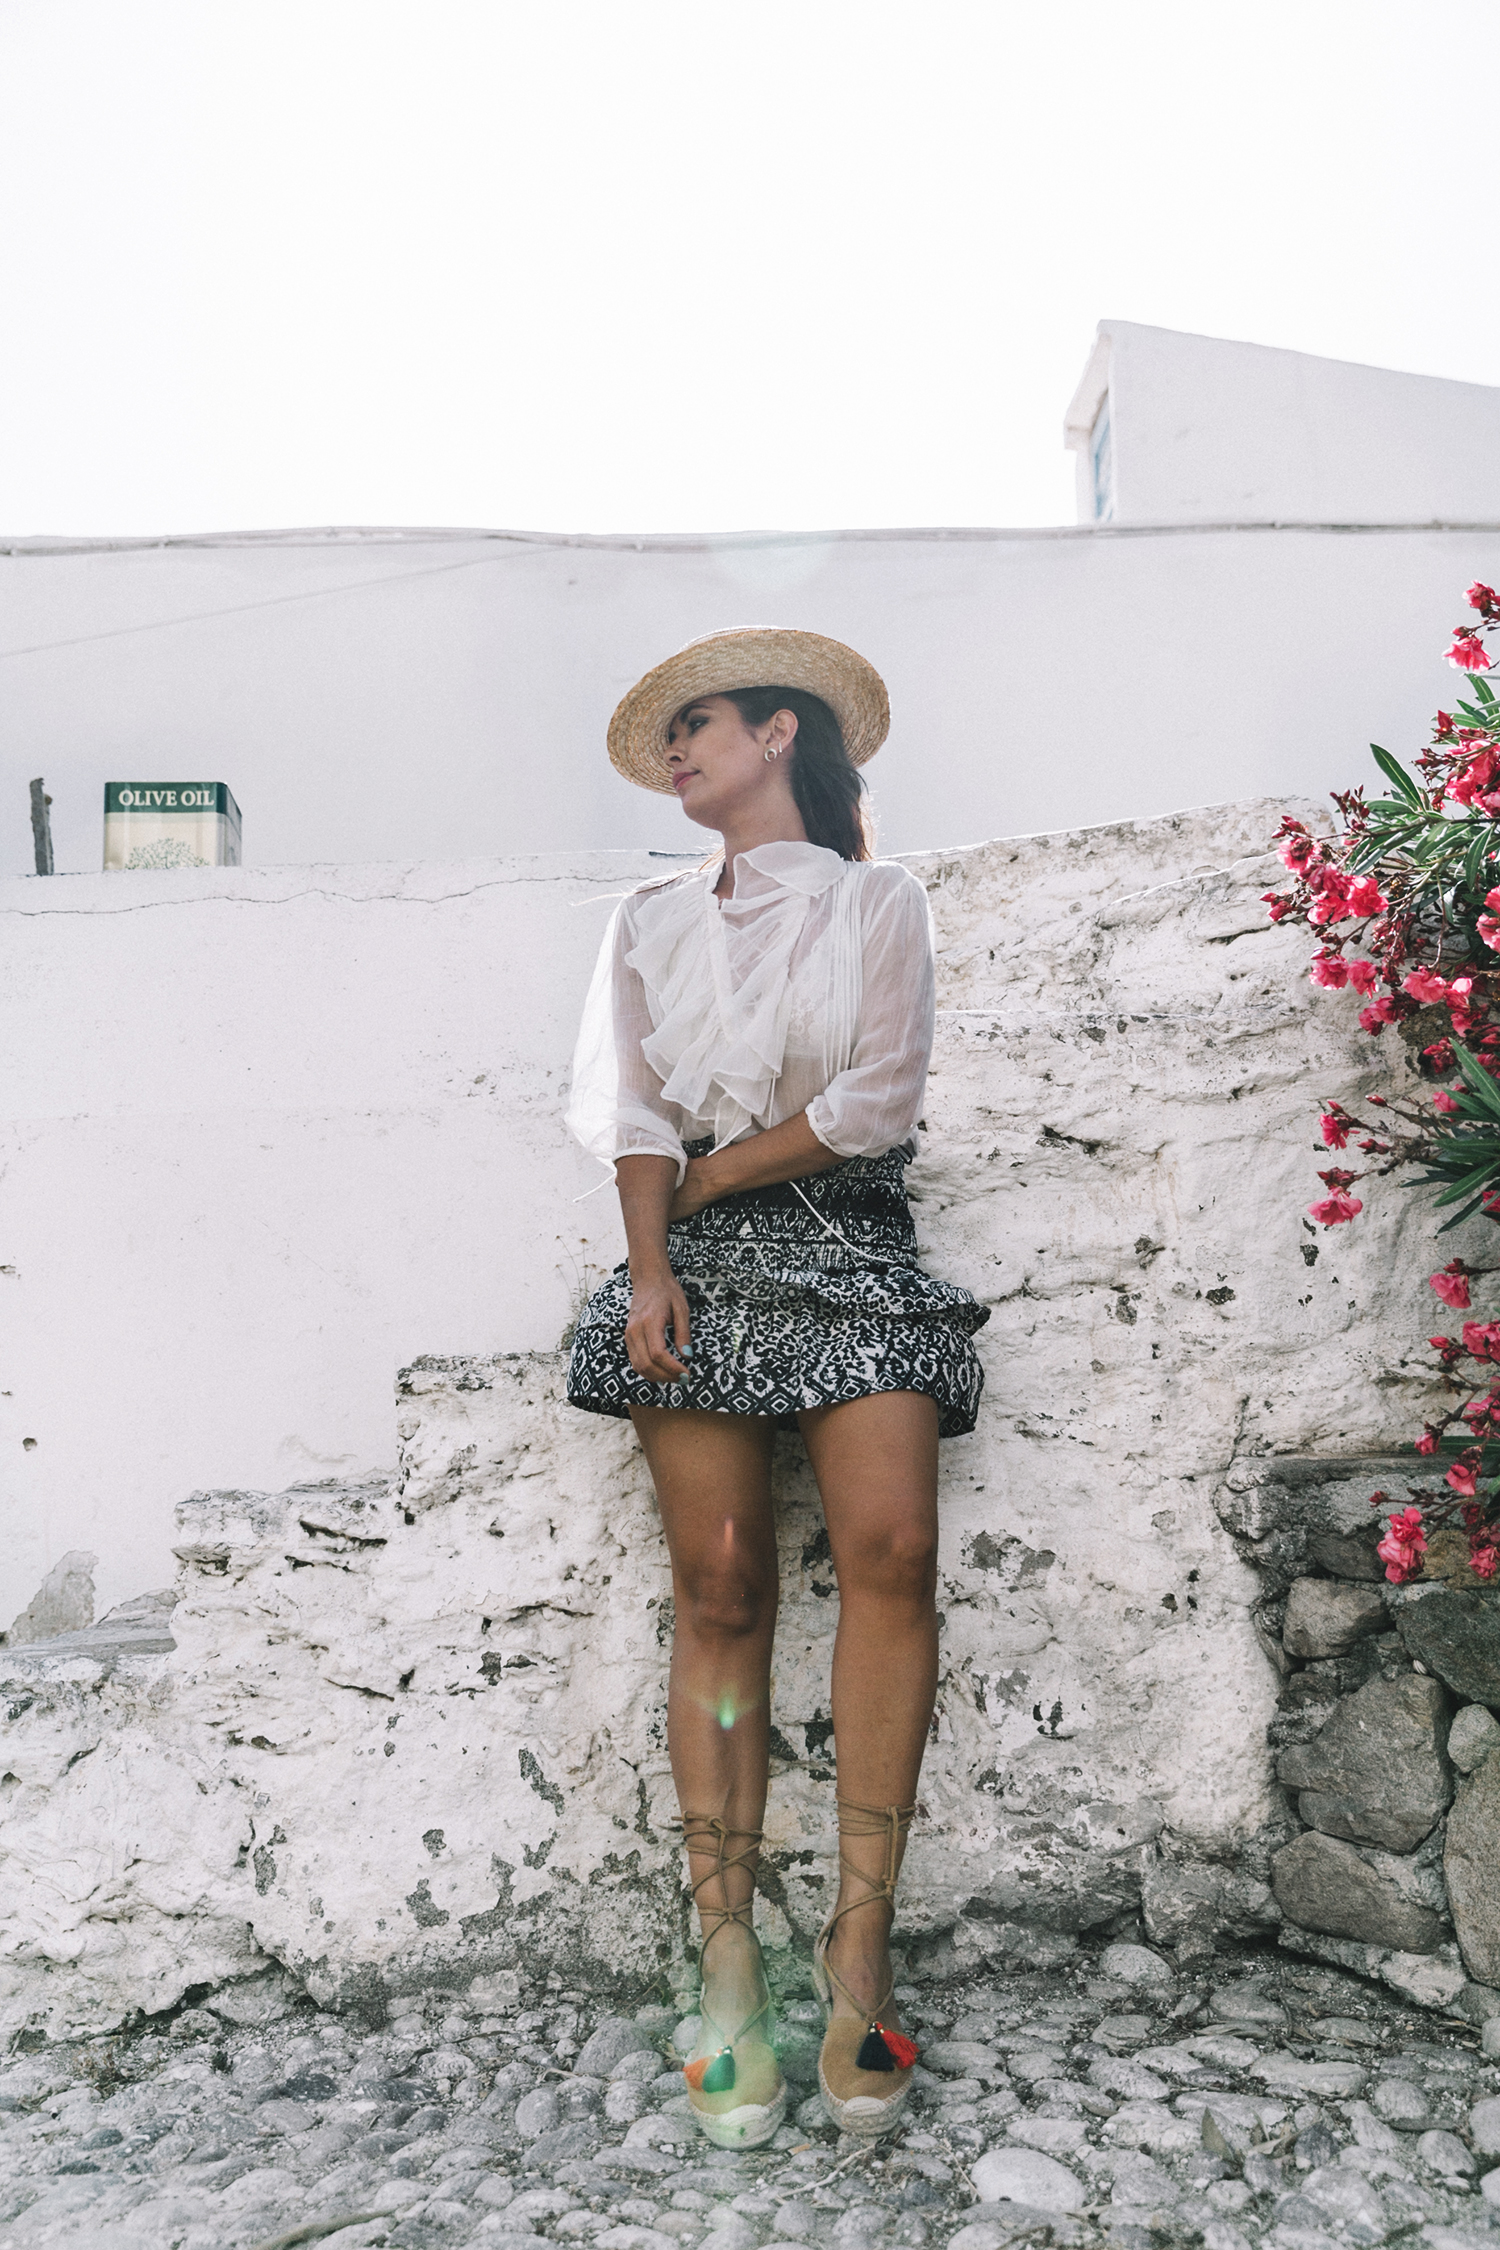 Lace_up_Blouse-Ralph_Lauren-Soludos_Espadrilles-Soludos_Escapes-Skirt-Straw_Hat-Canotier-Lack_Of_Color-Street_Style-Mykonos-Greece-Collage_Vintage-40